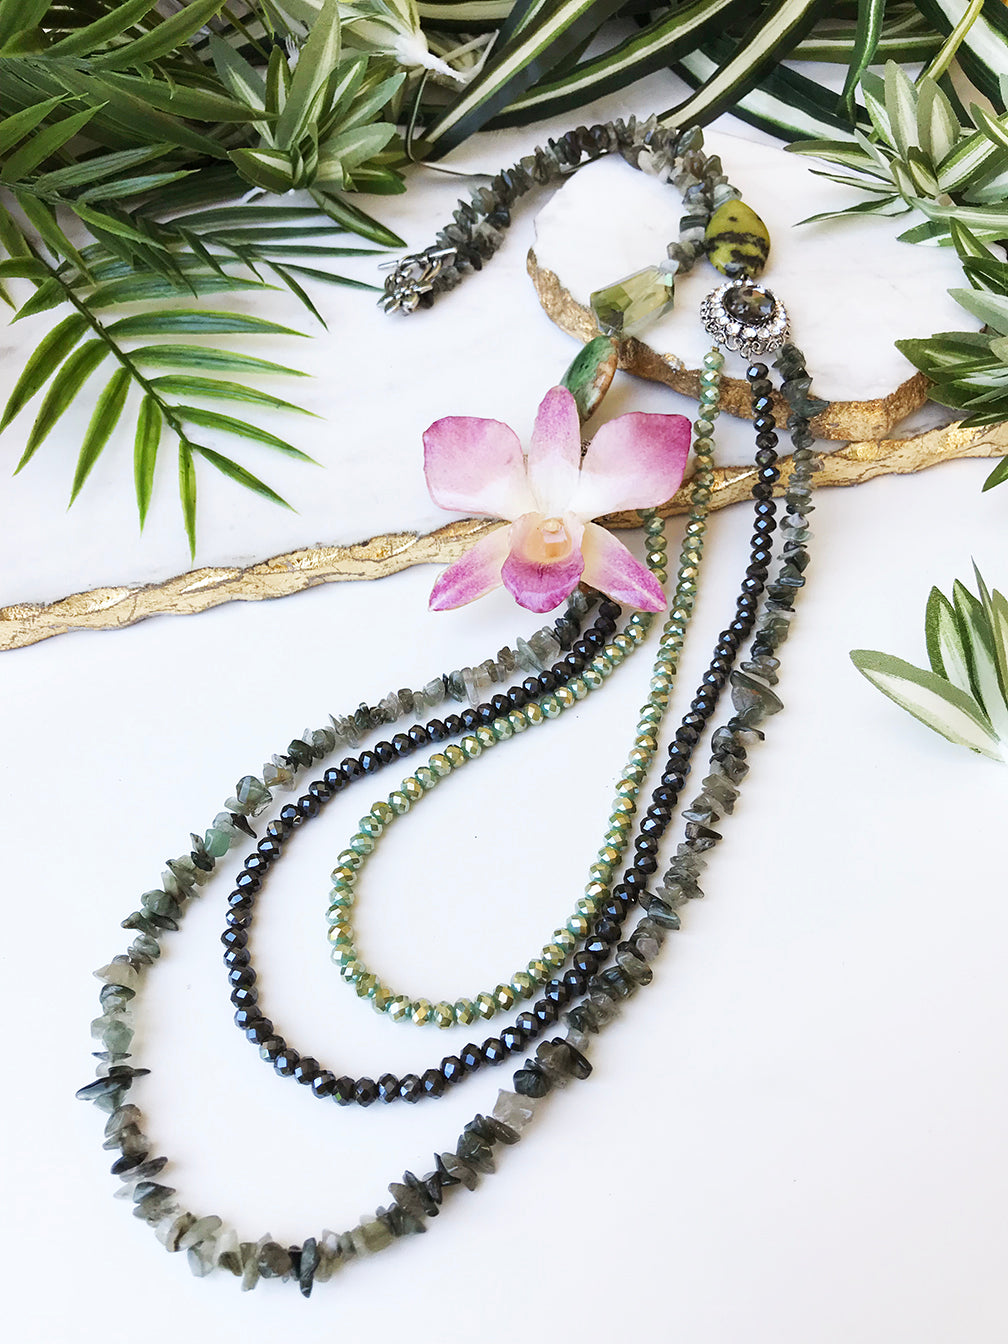 bloom tiered necklace - BL-T-012-NL